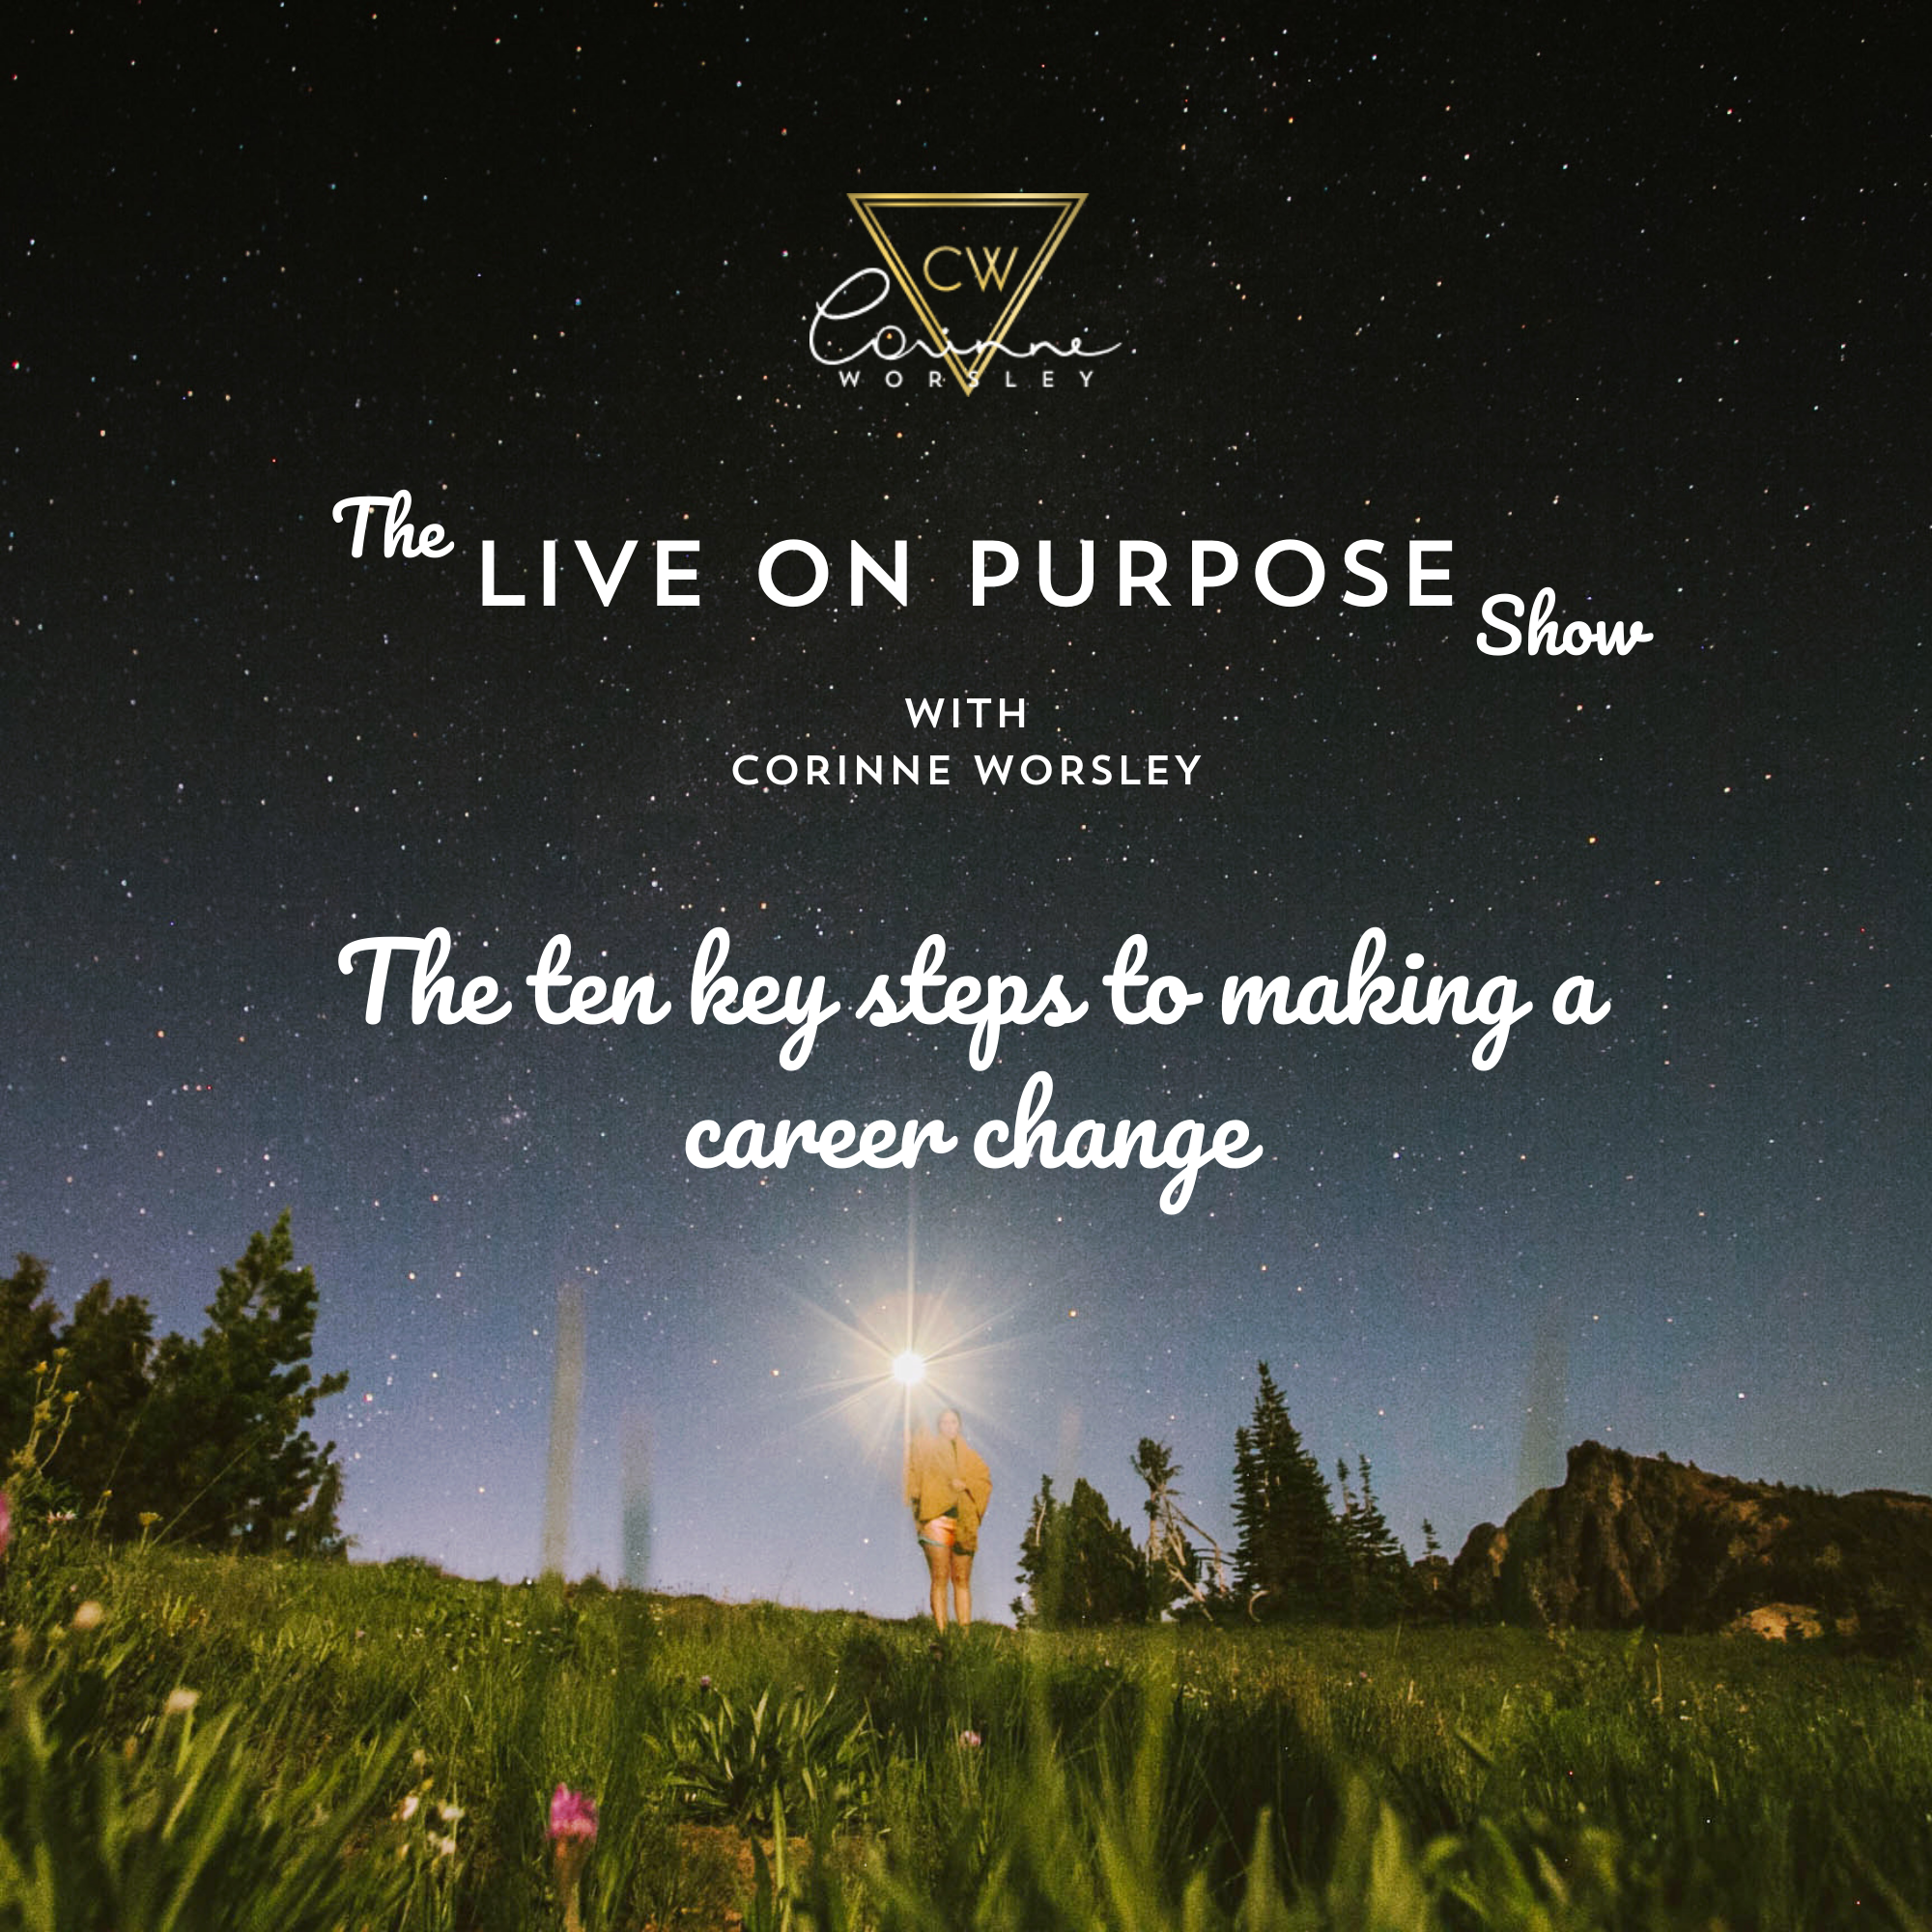 Artwork for The ten key steps to making a career change